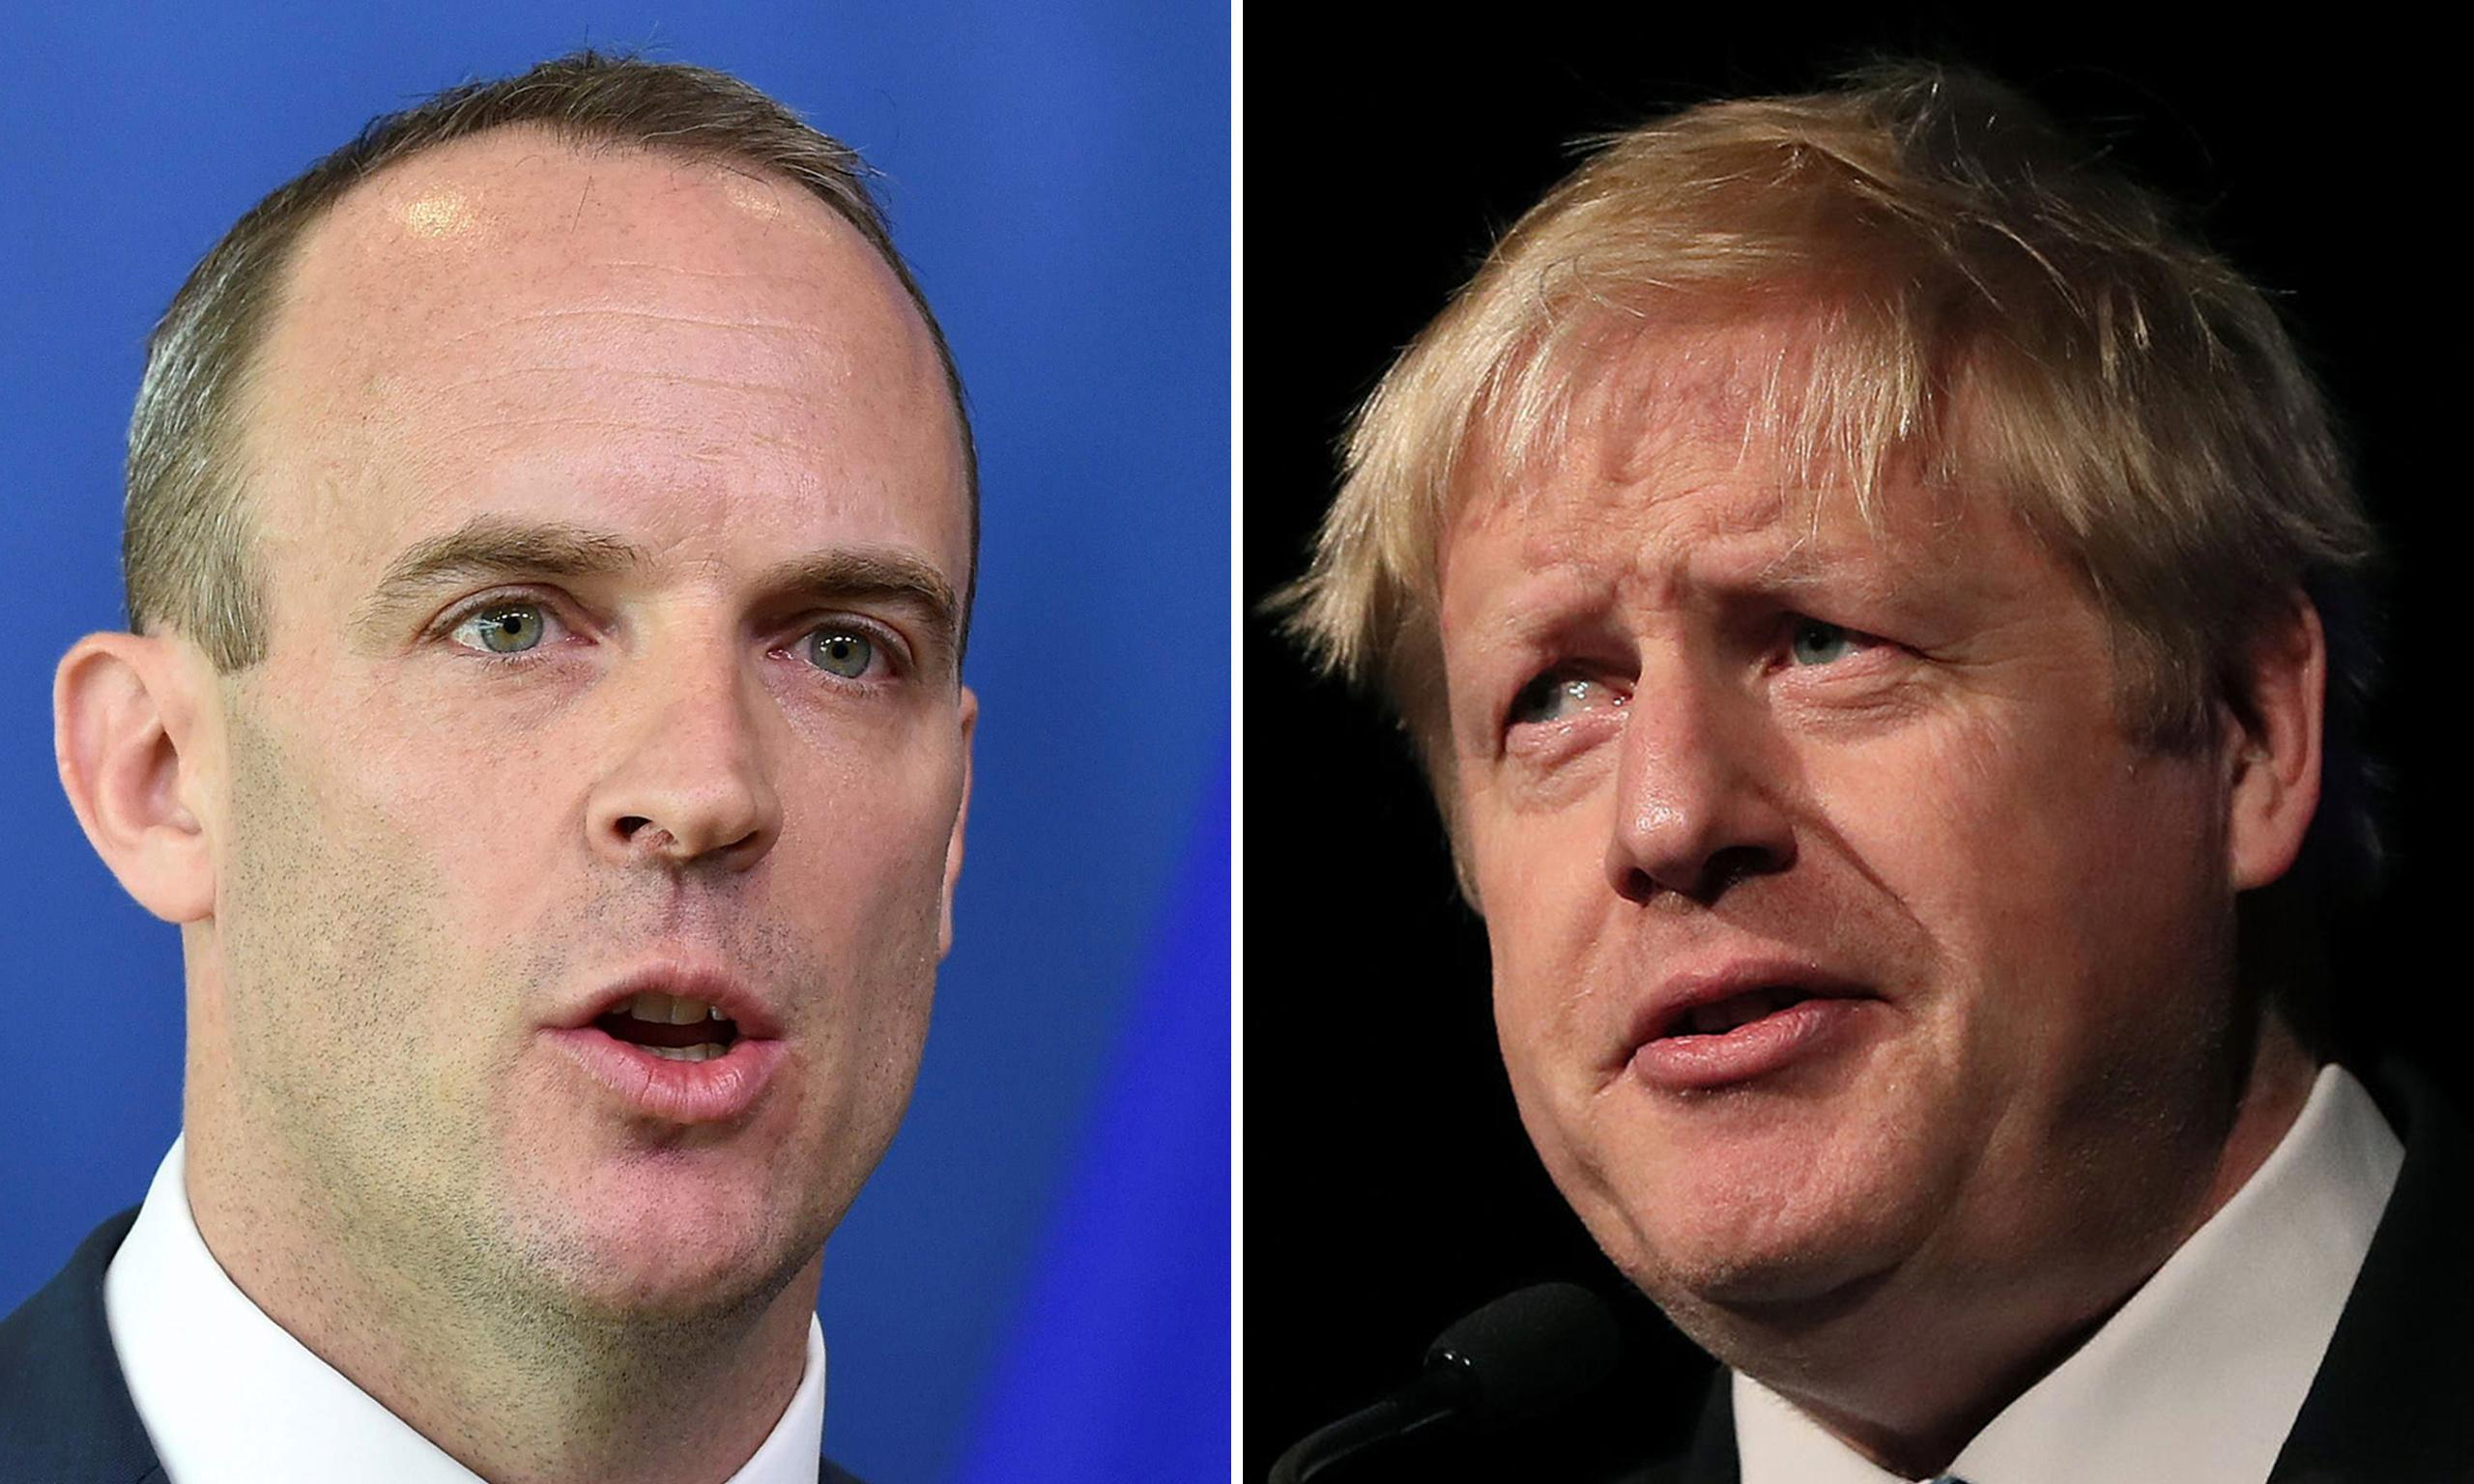 EU view of Tory leadership candidates deeply critical, say sources